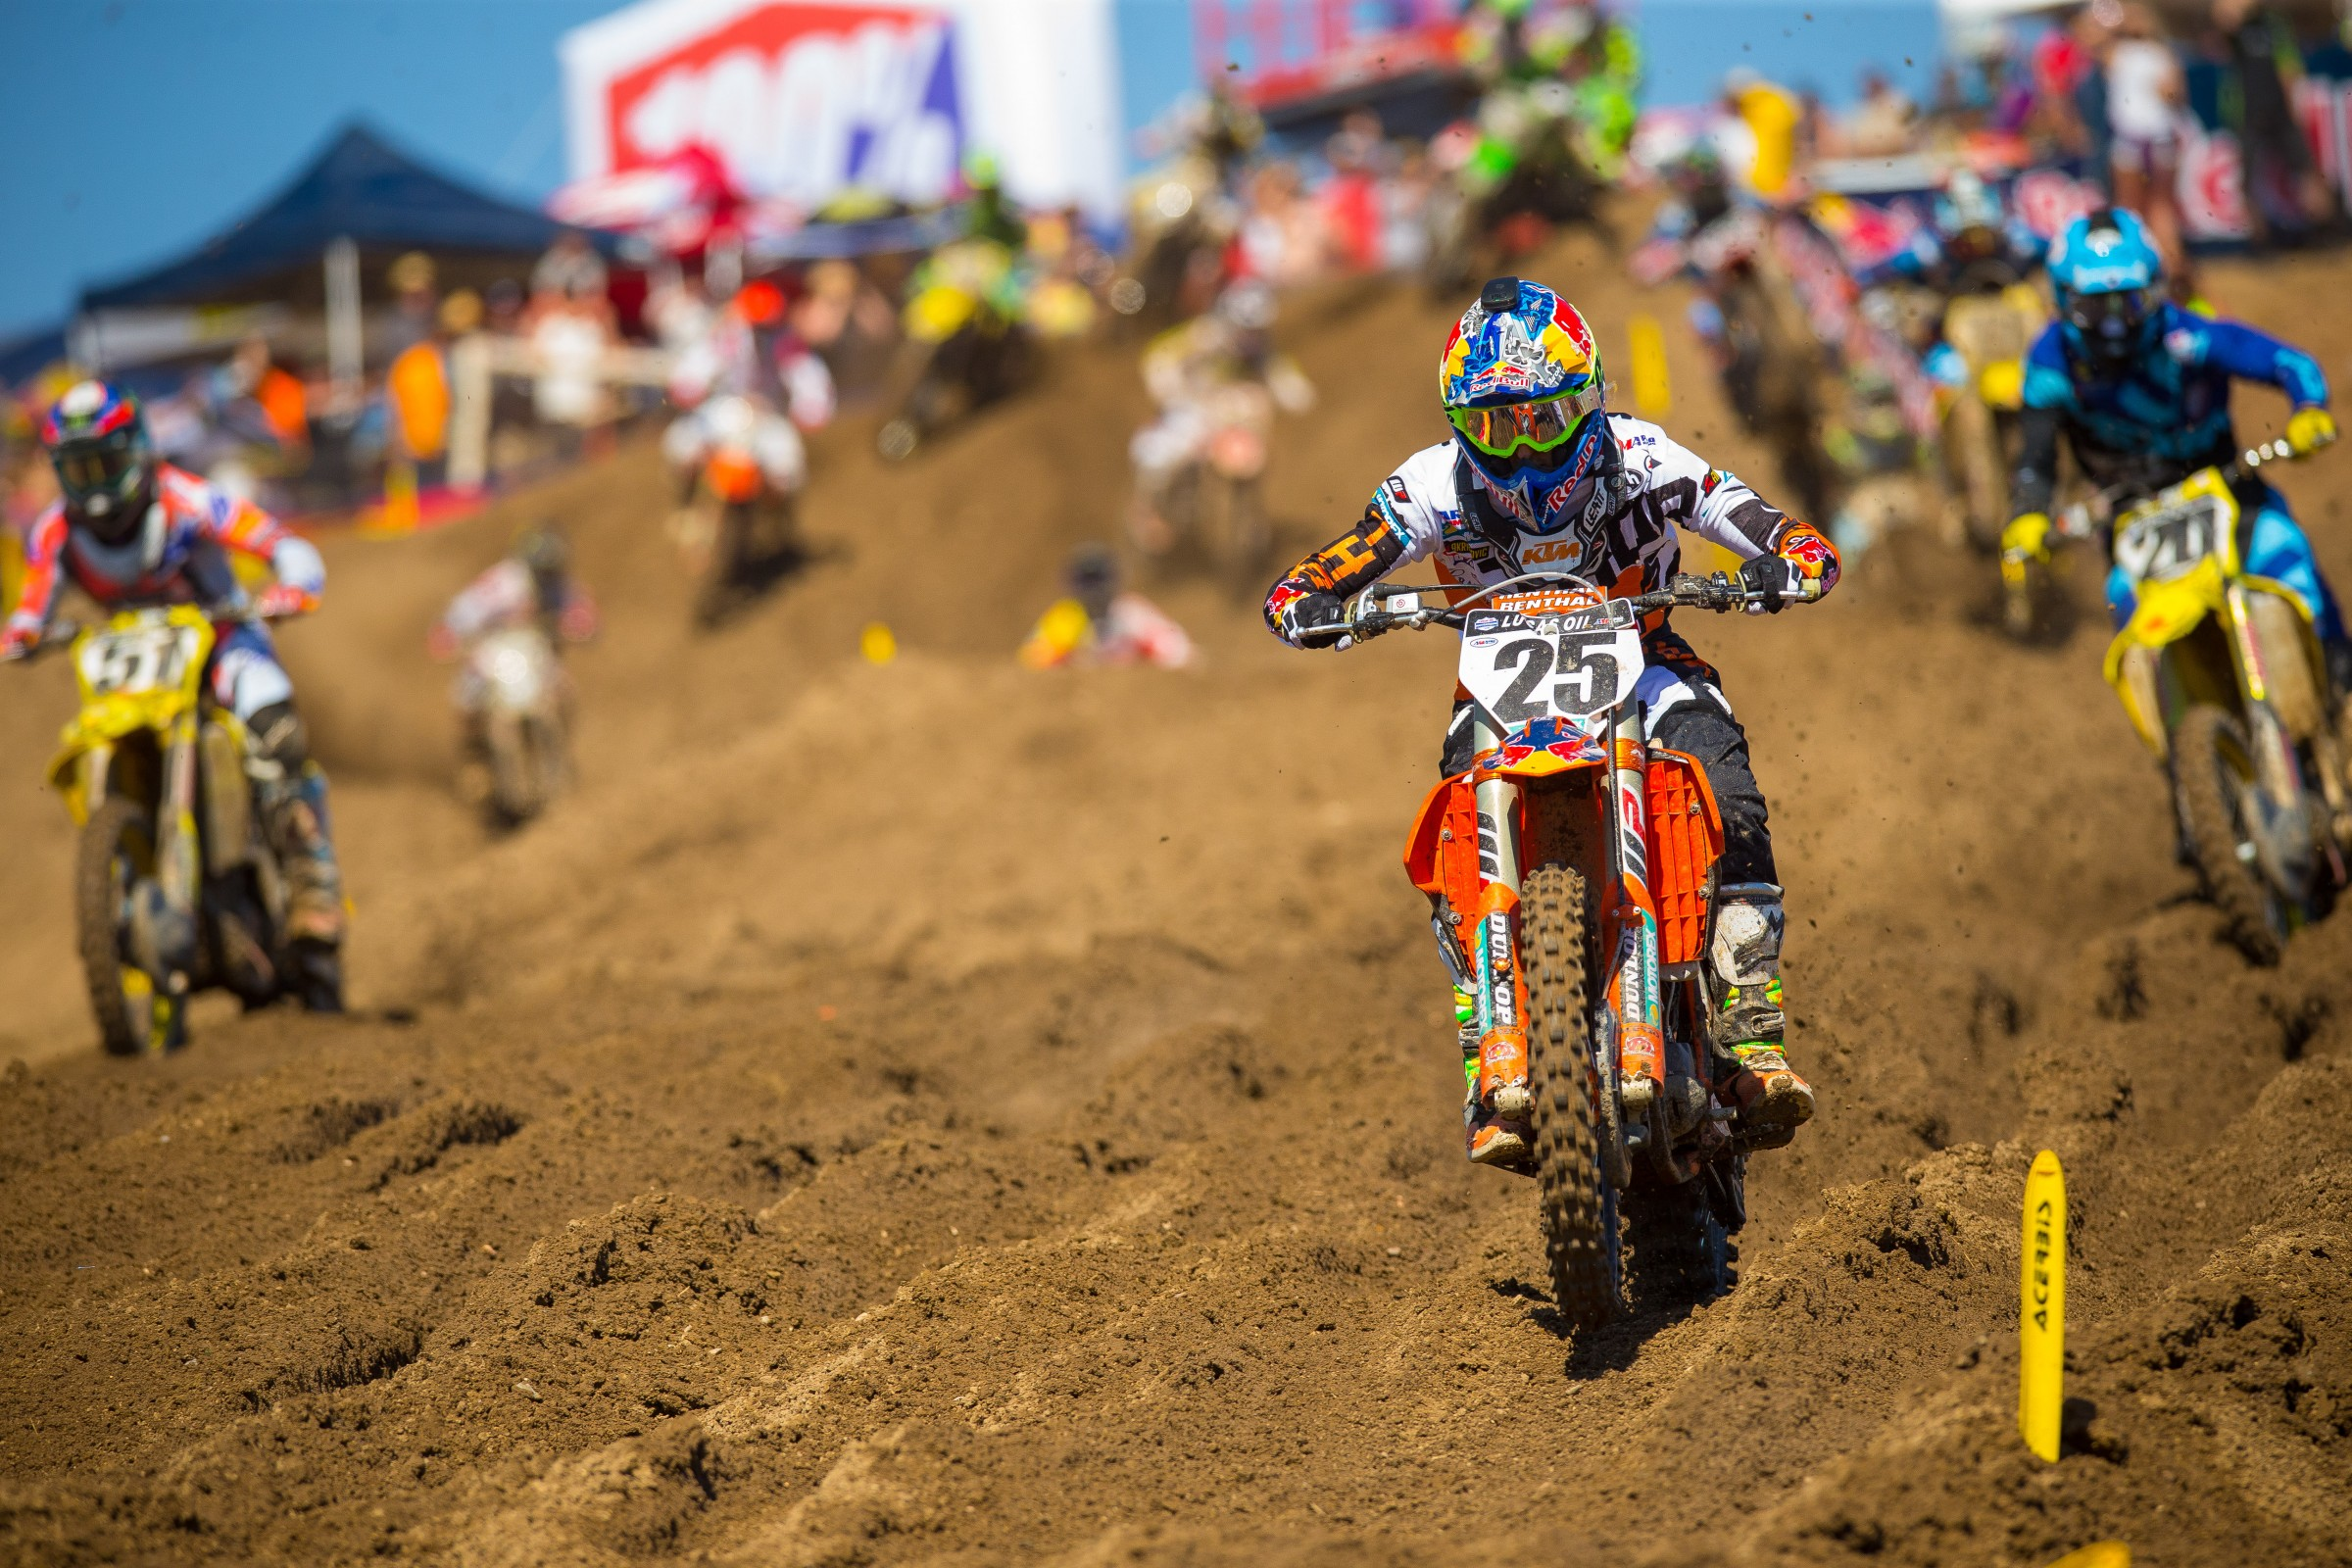 Musquin was four laps away from winning the opening round of Pro Motocross.